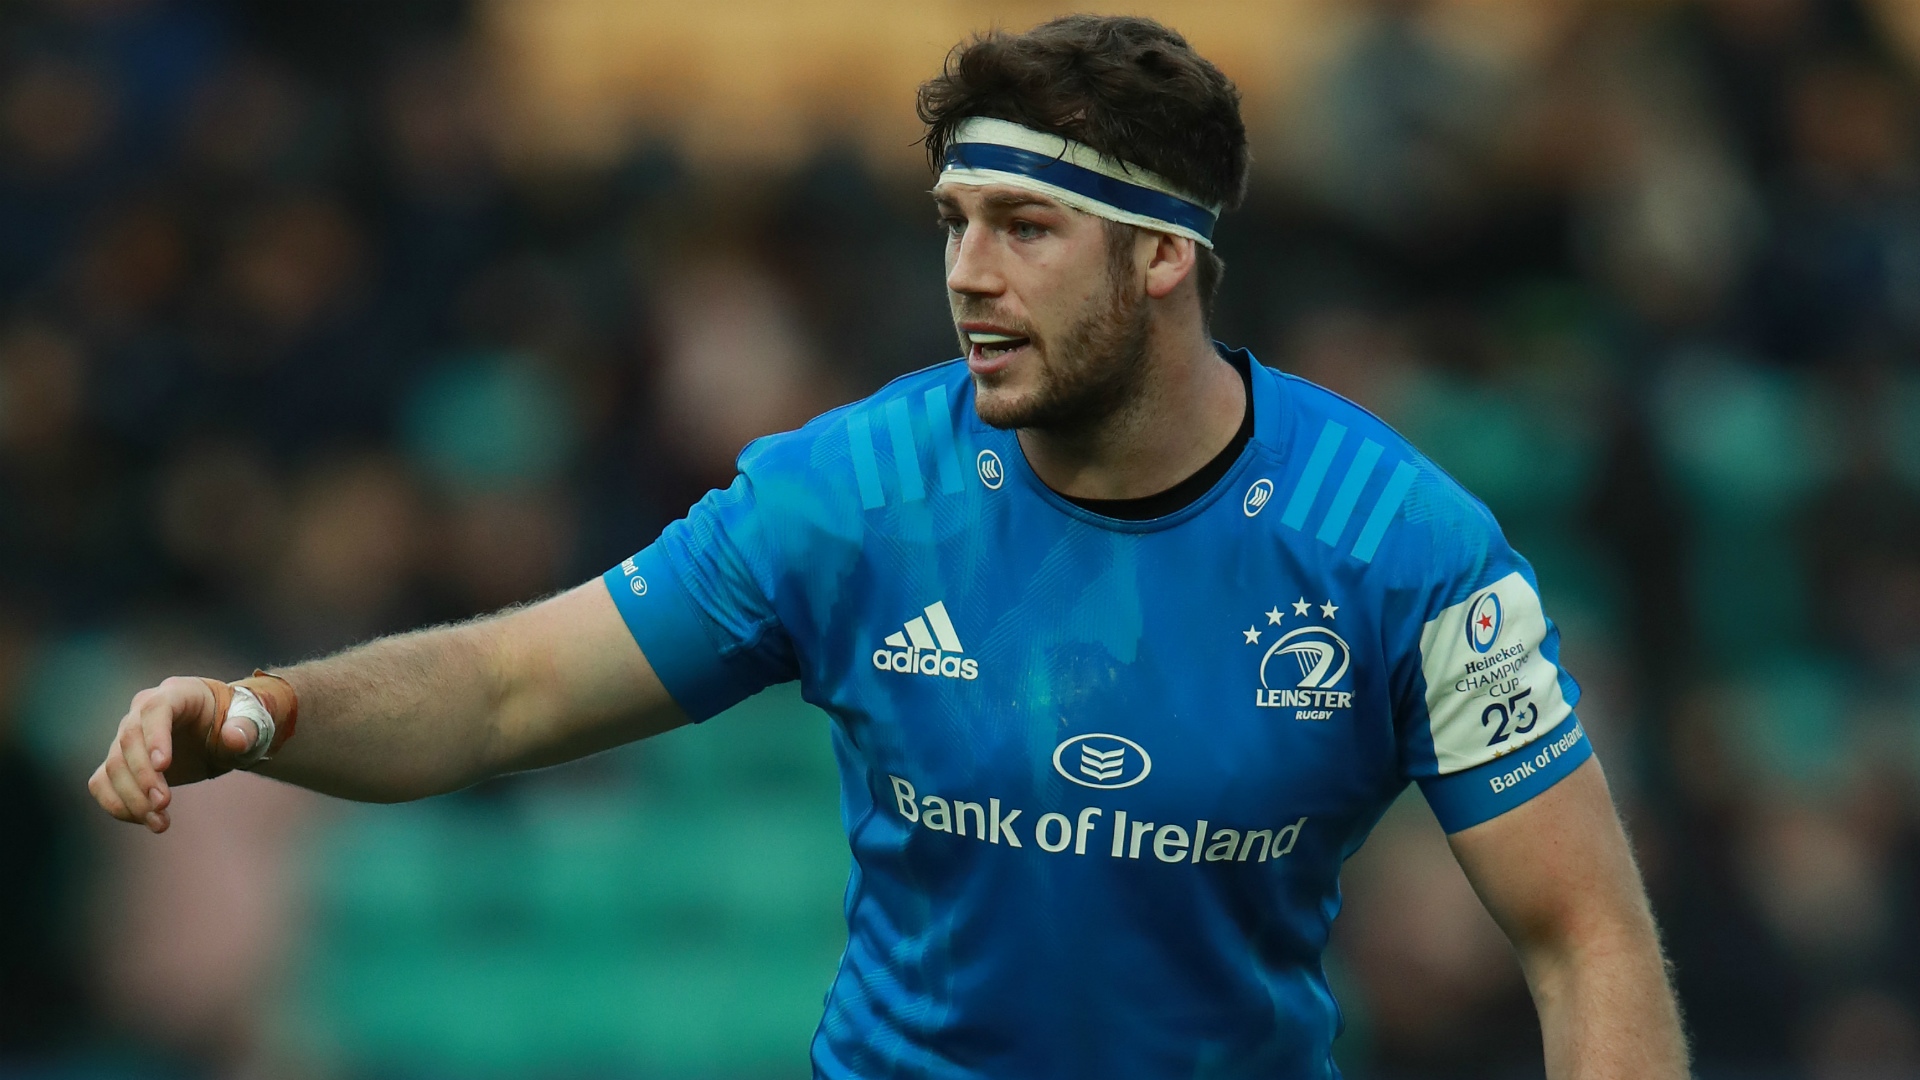 Johnny Sexton and Jordan Larmour have been joined by uncapped number eight Caelan Doris in Ireland's team to face Scotland.